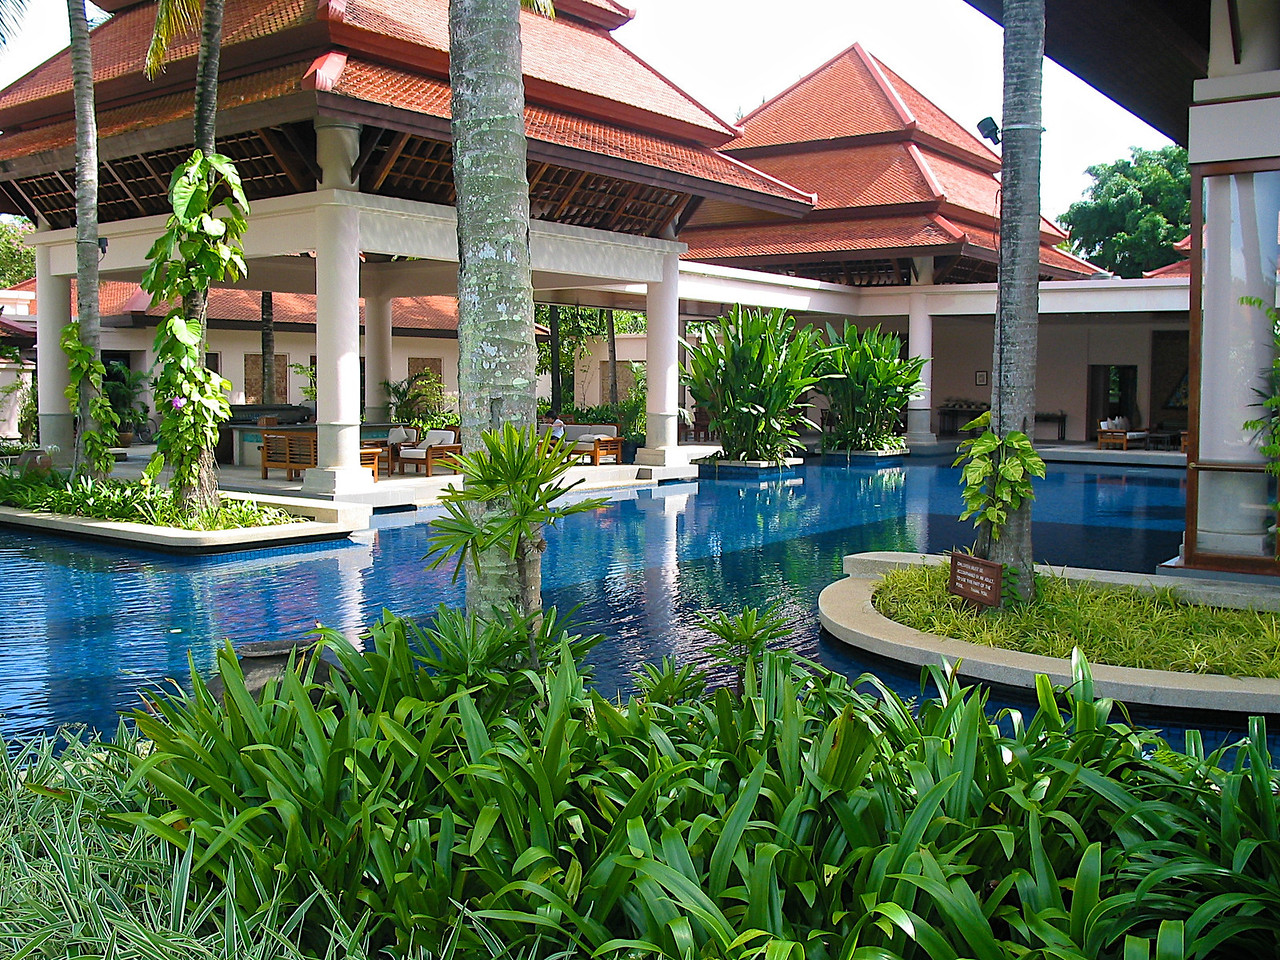 …another pool meanders throughout the front of the property..